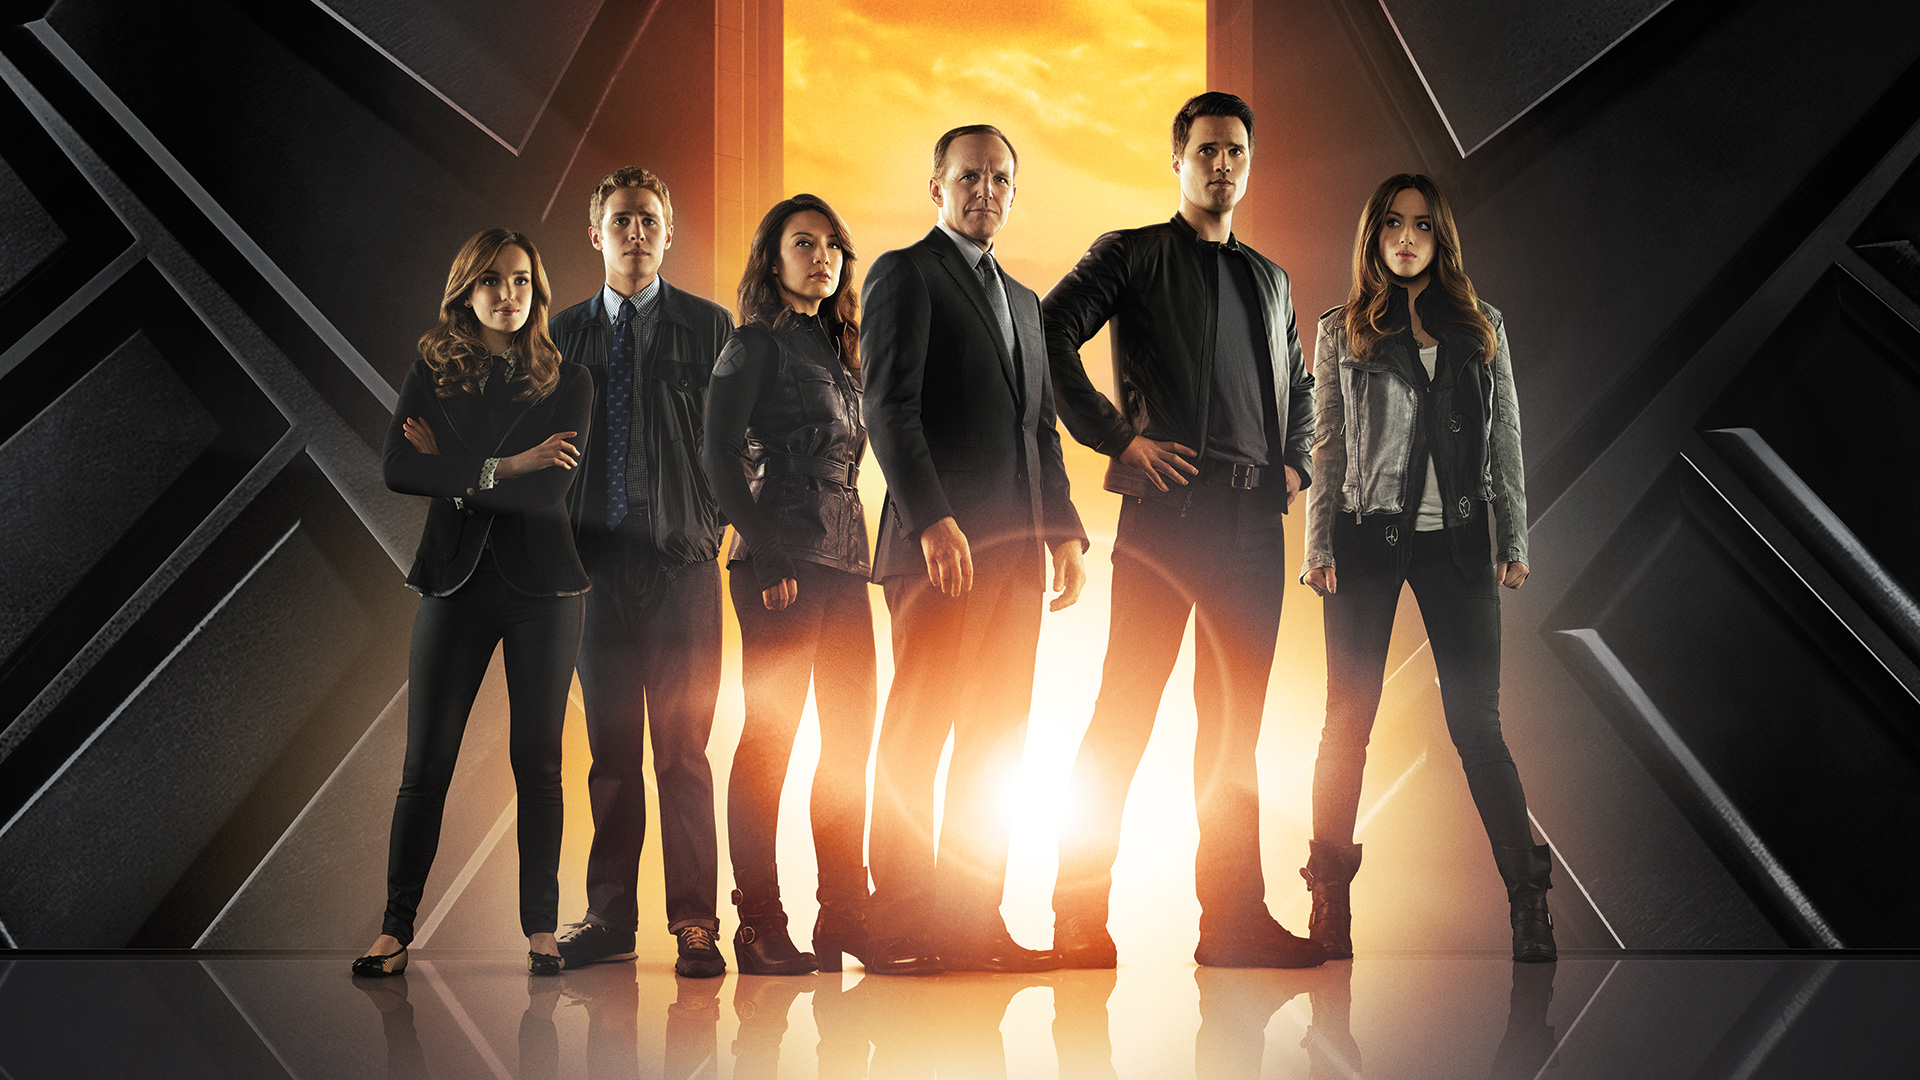 [影集] Agents of S.H.I.E.L.D. (2013~2020) Marvels-agents-of-shield-520c8056668d8